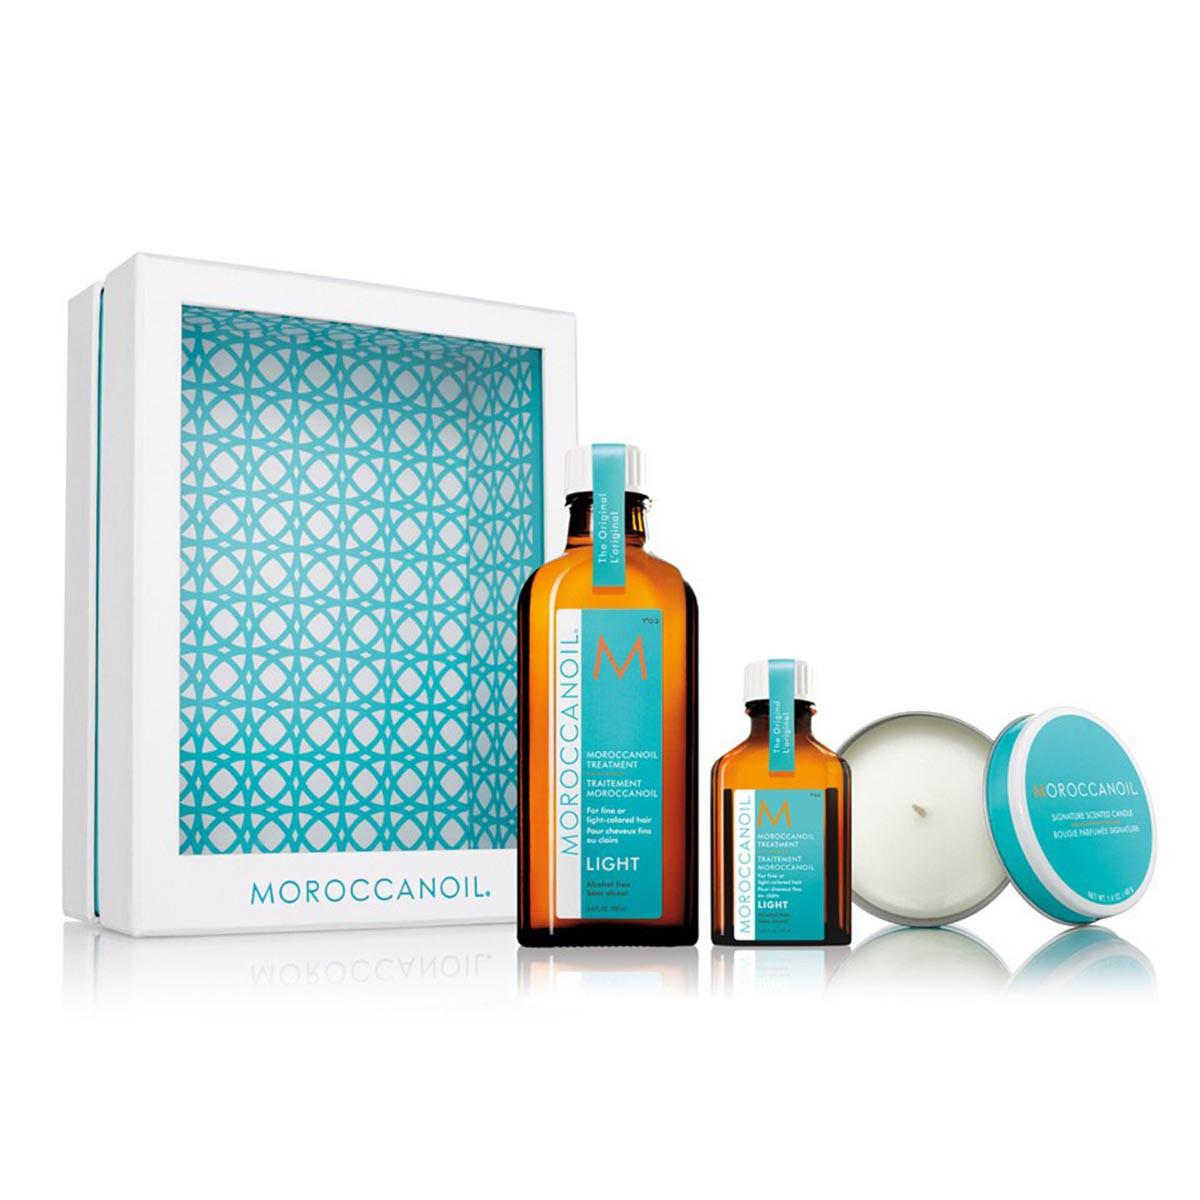 Moroccanoil fragrances Tratment Light 100ml Candle